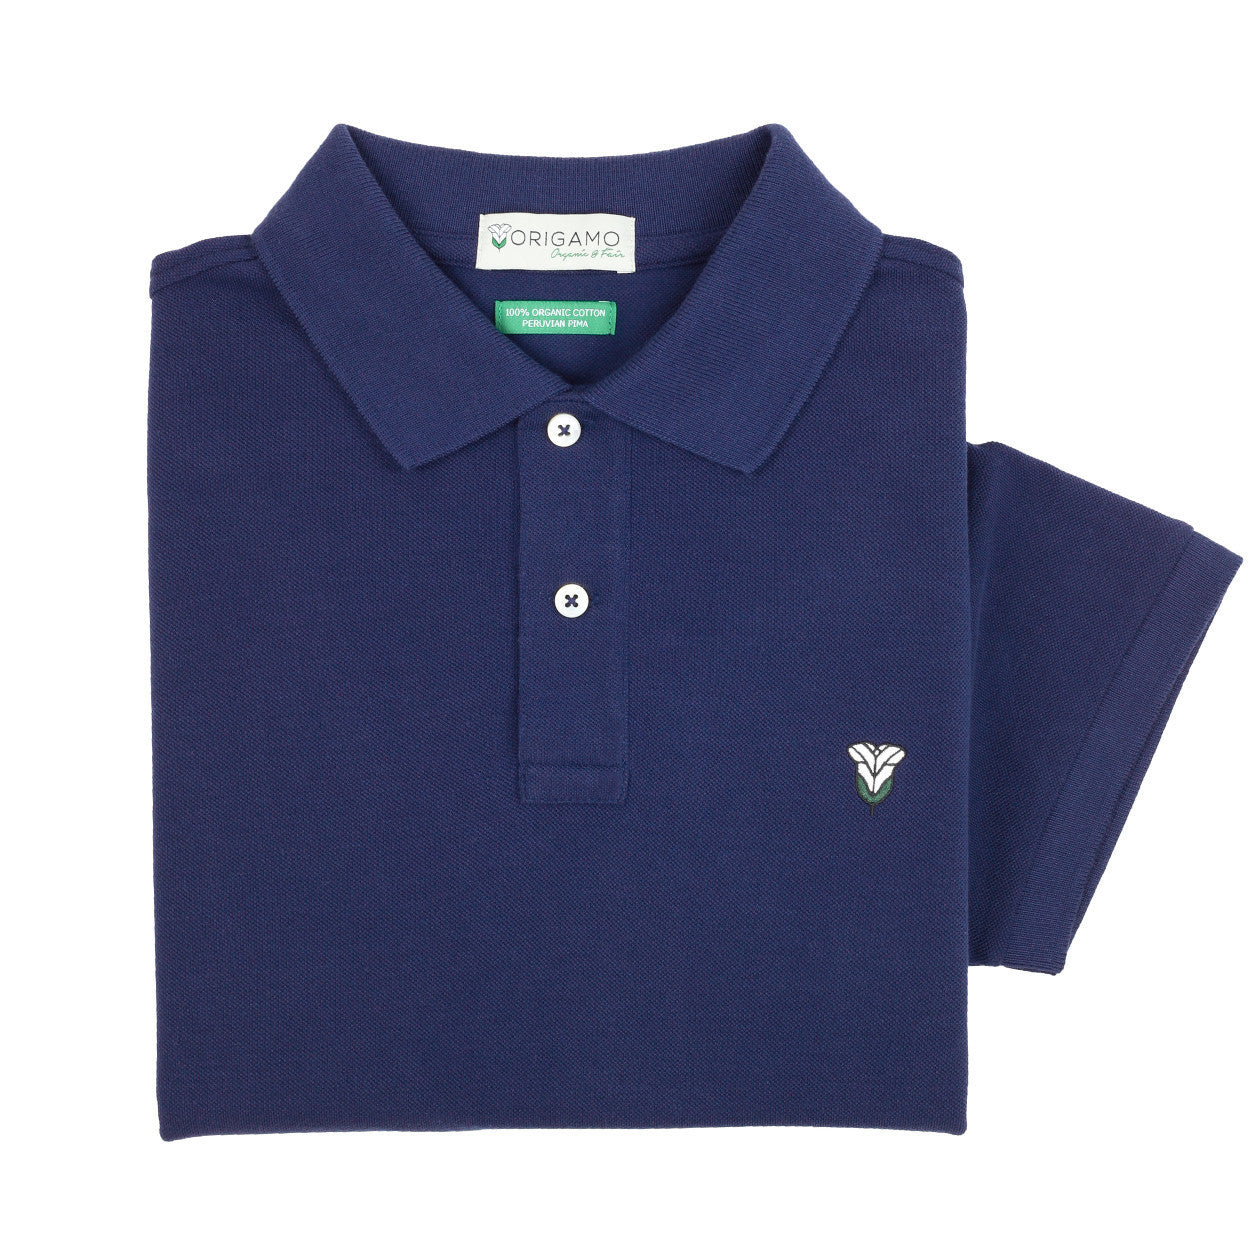 Pacific Polo Plain Navy </br>Double Pique - 100% Organic Pima Cotton